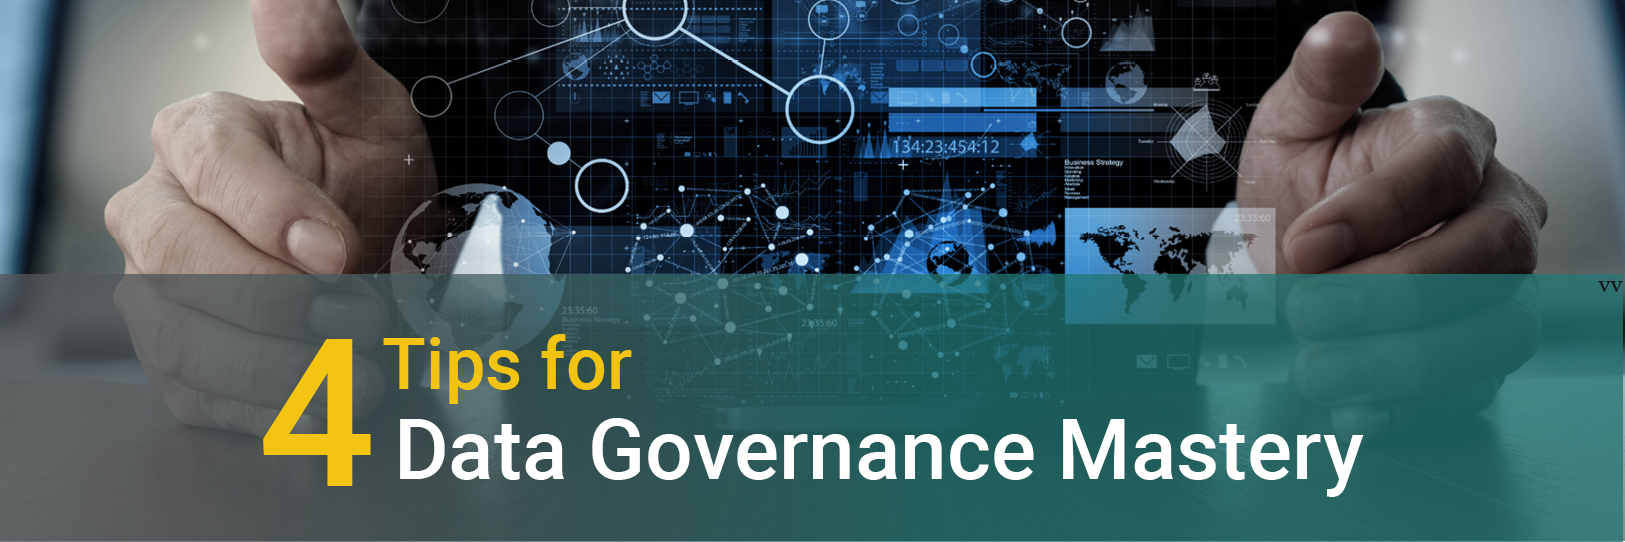 4 Tips for Data Governance Mastery